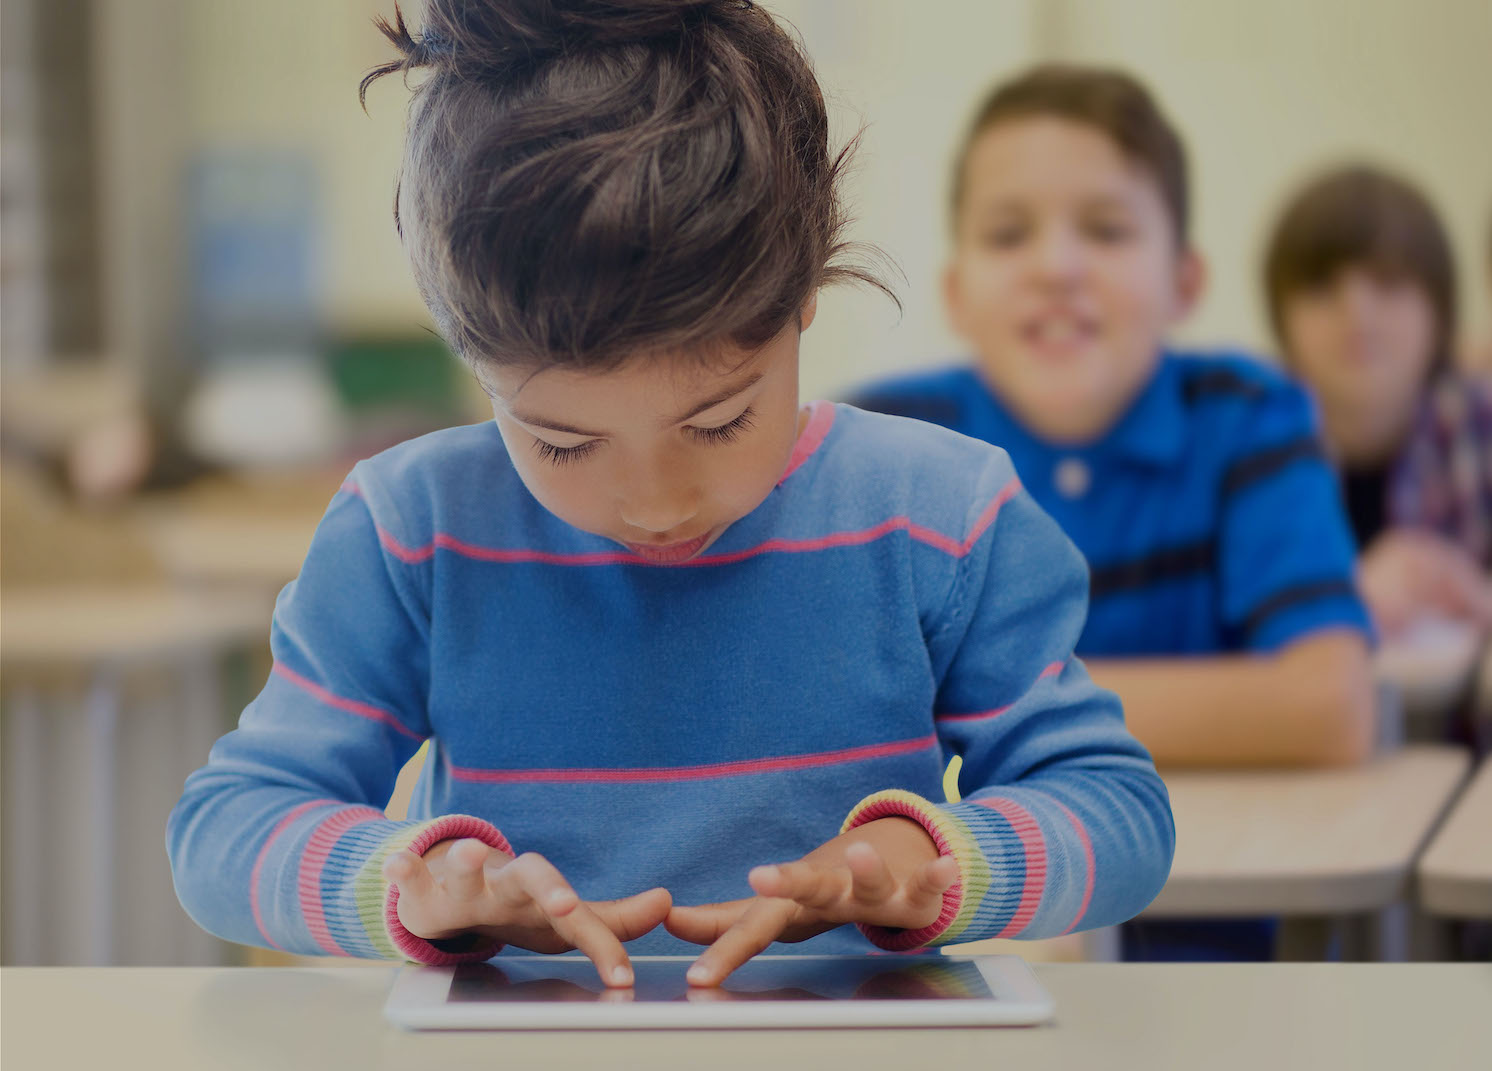 Student In Classroom With IPad